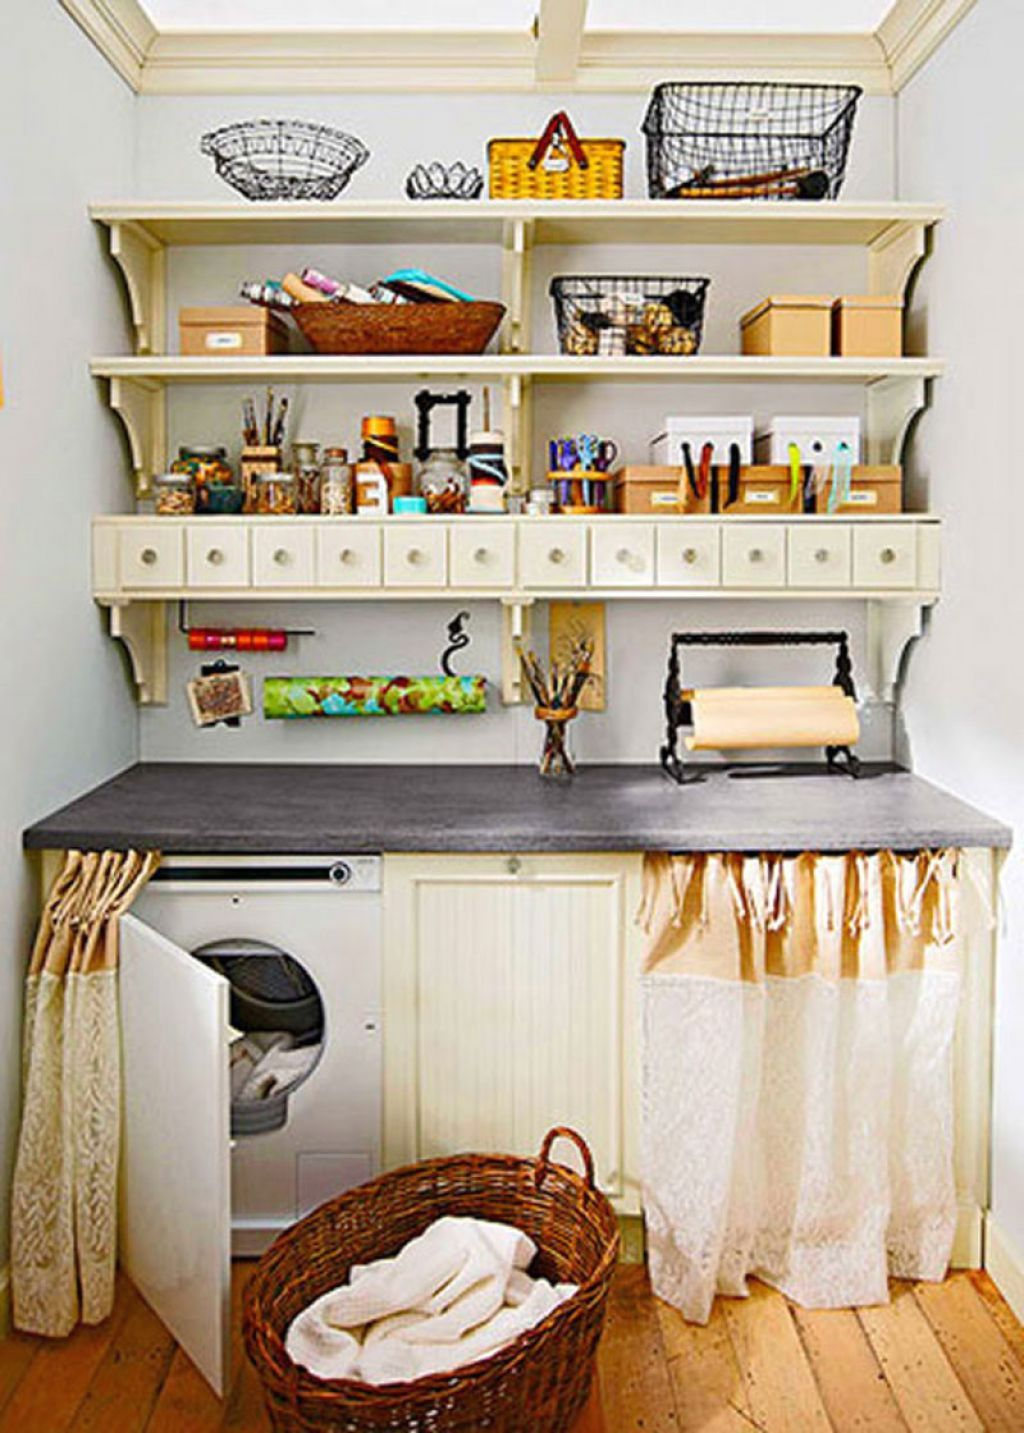 Small kitchen and small laundry room storage solutions Laundry room storage